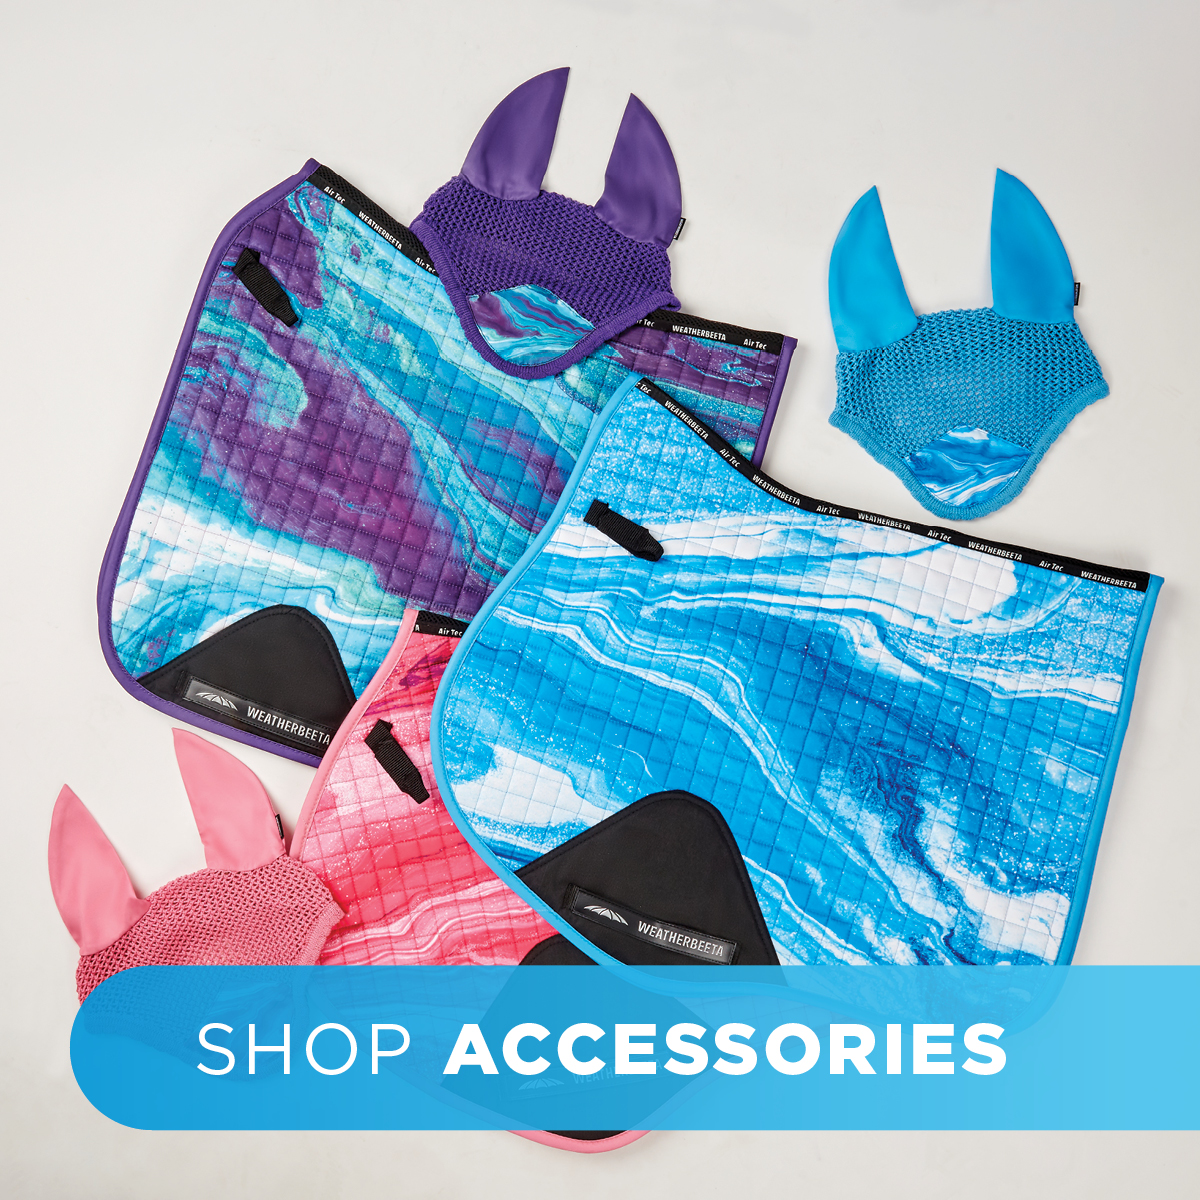 marble print accessories